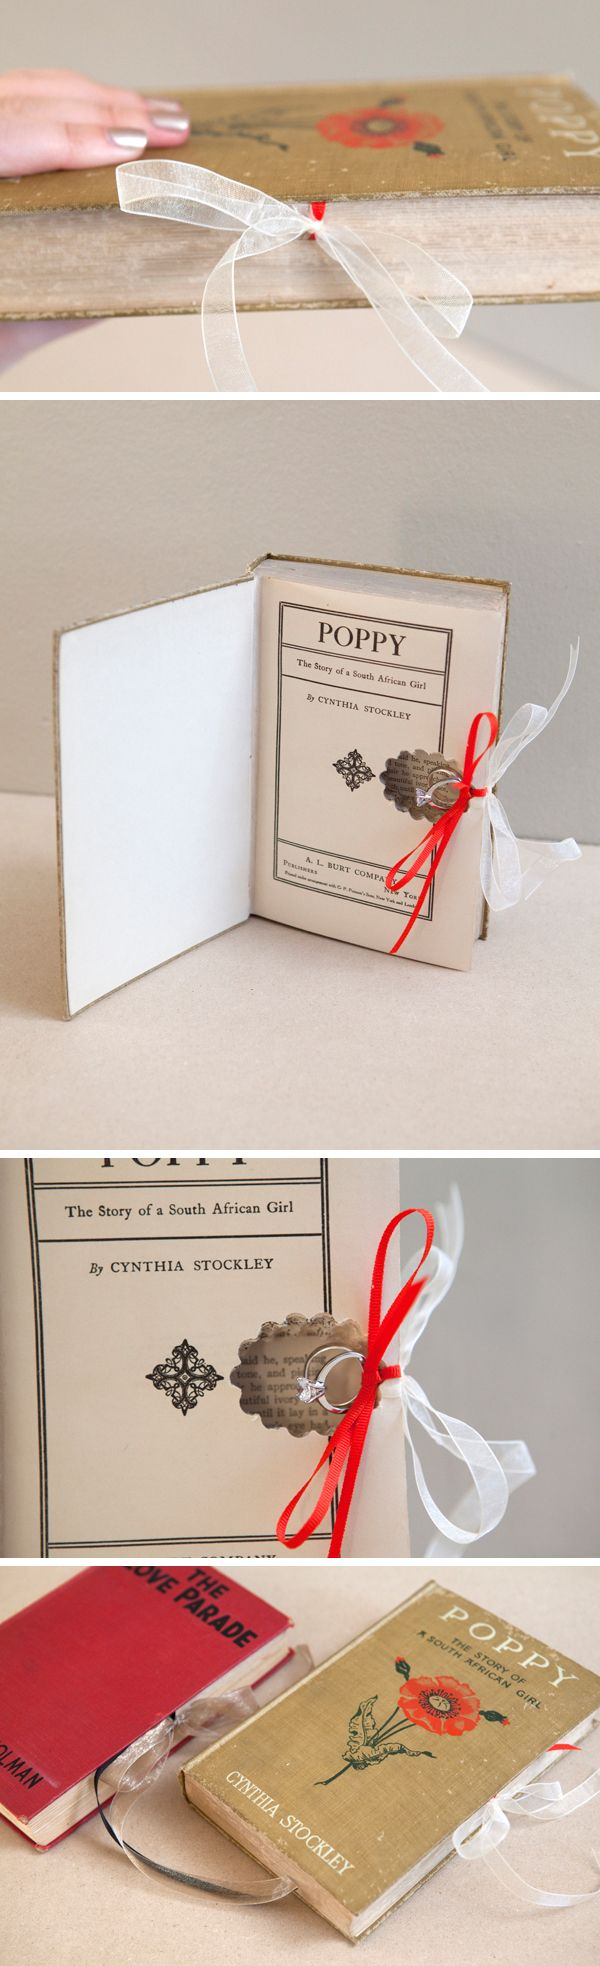 Ring bearer book. Such a cute idea.